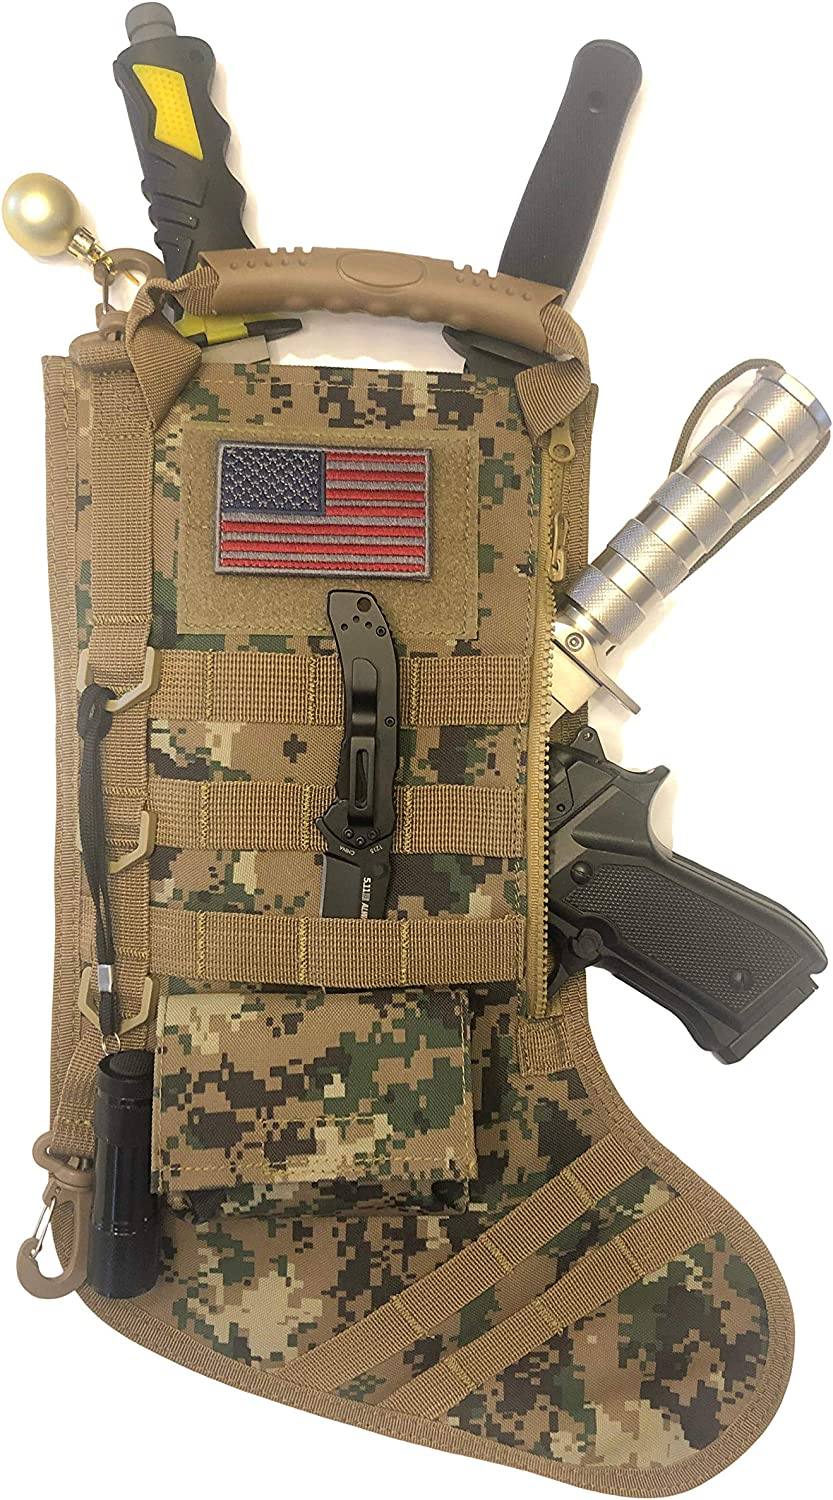 Military Tactical Christmas Stocking Xmas Scok Storage Bag with Molle Gear